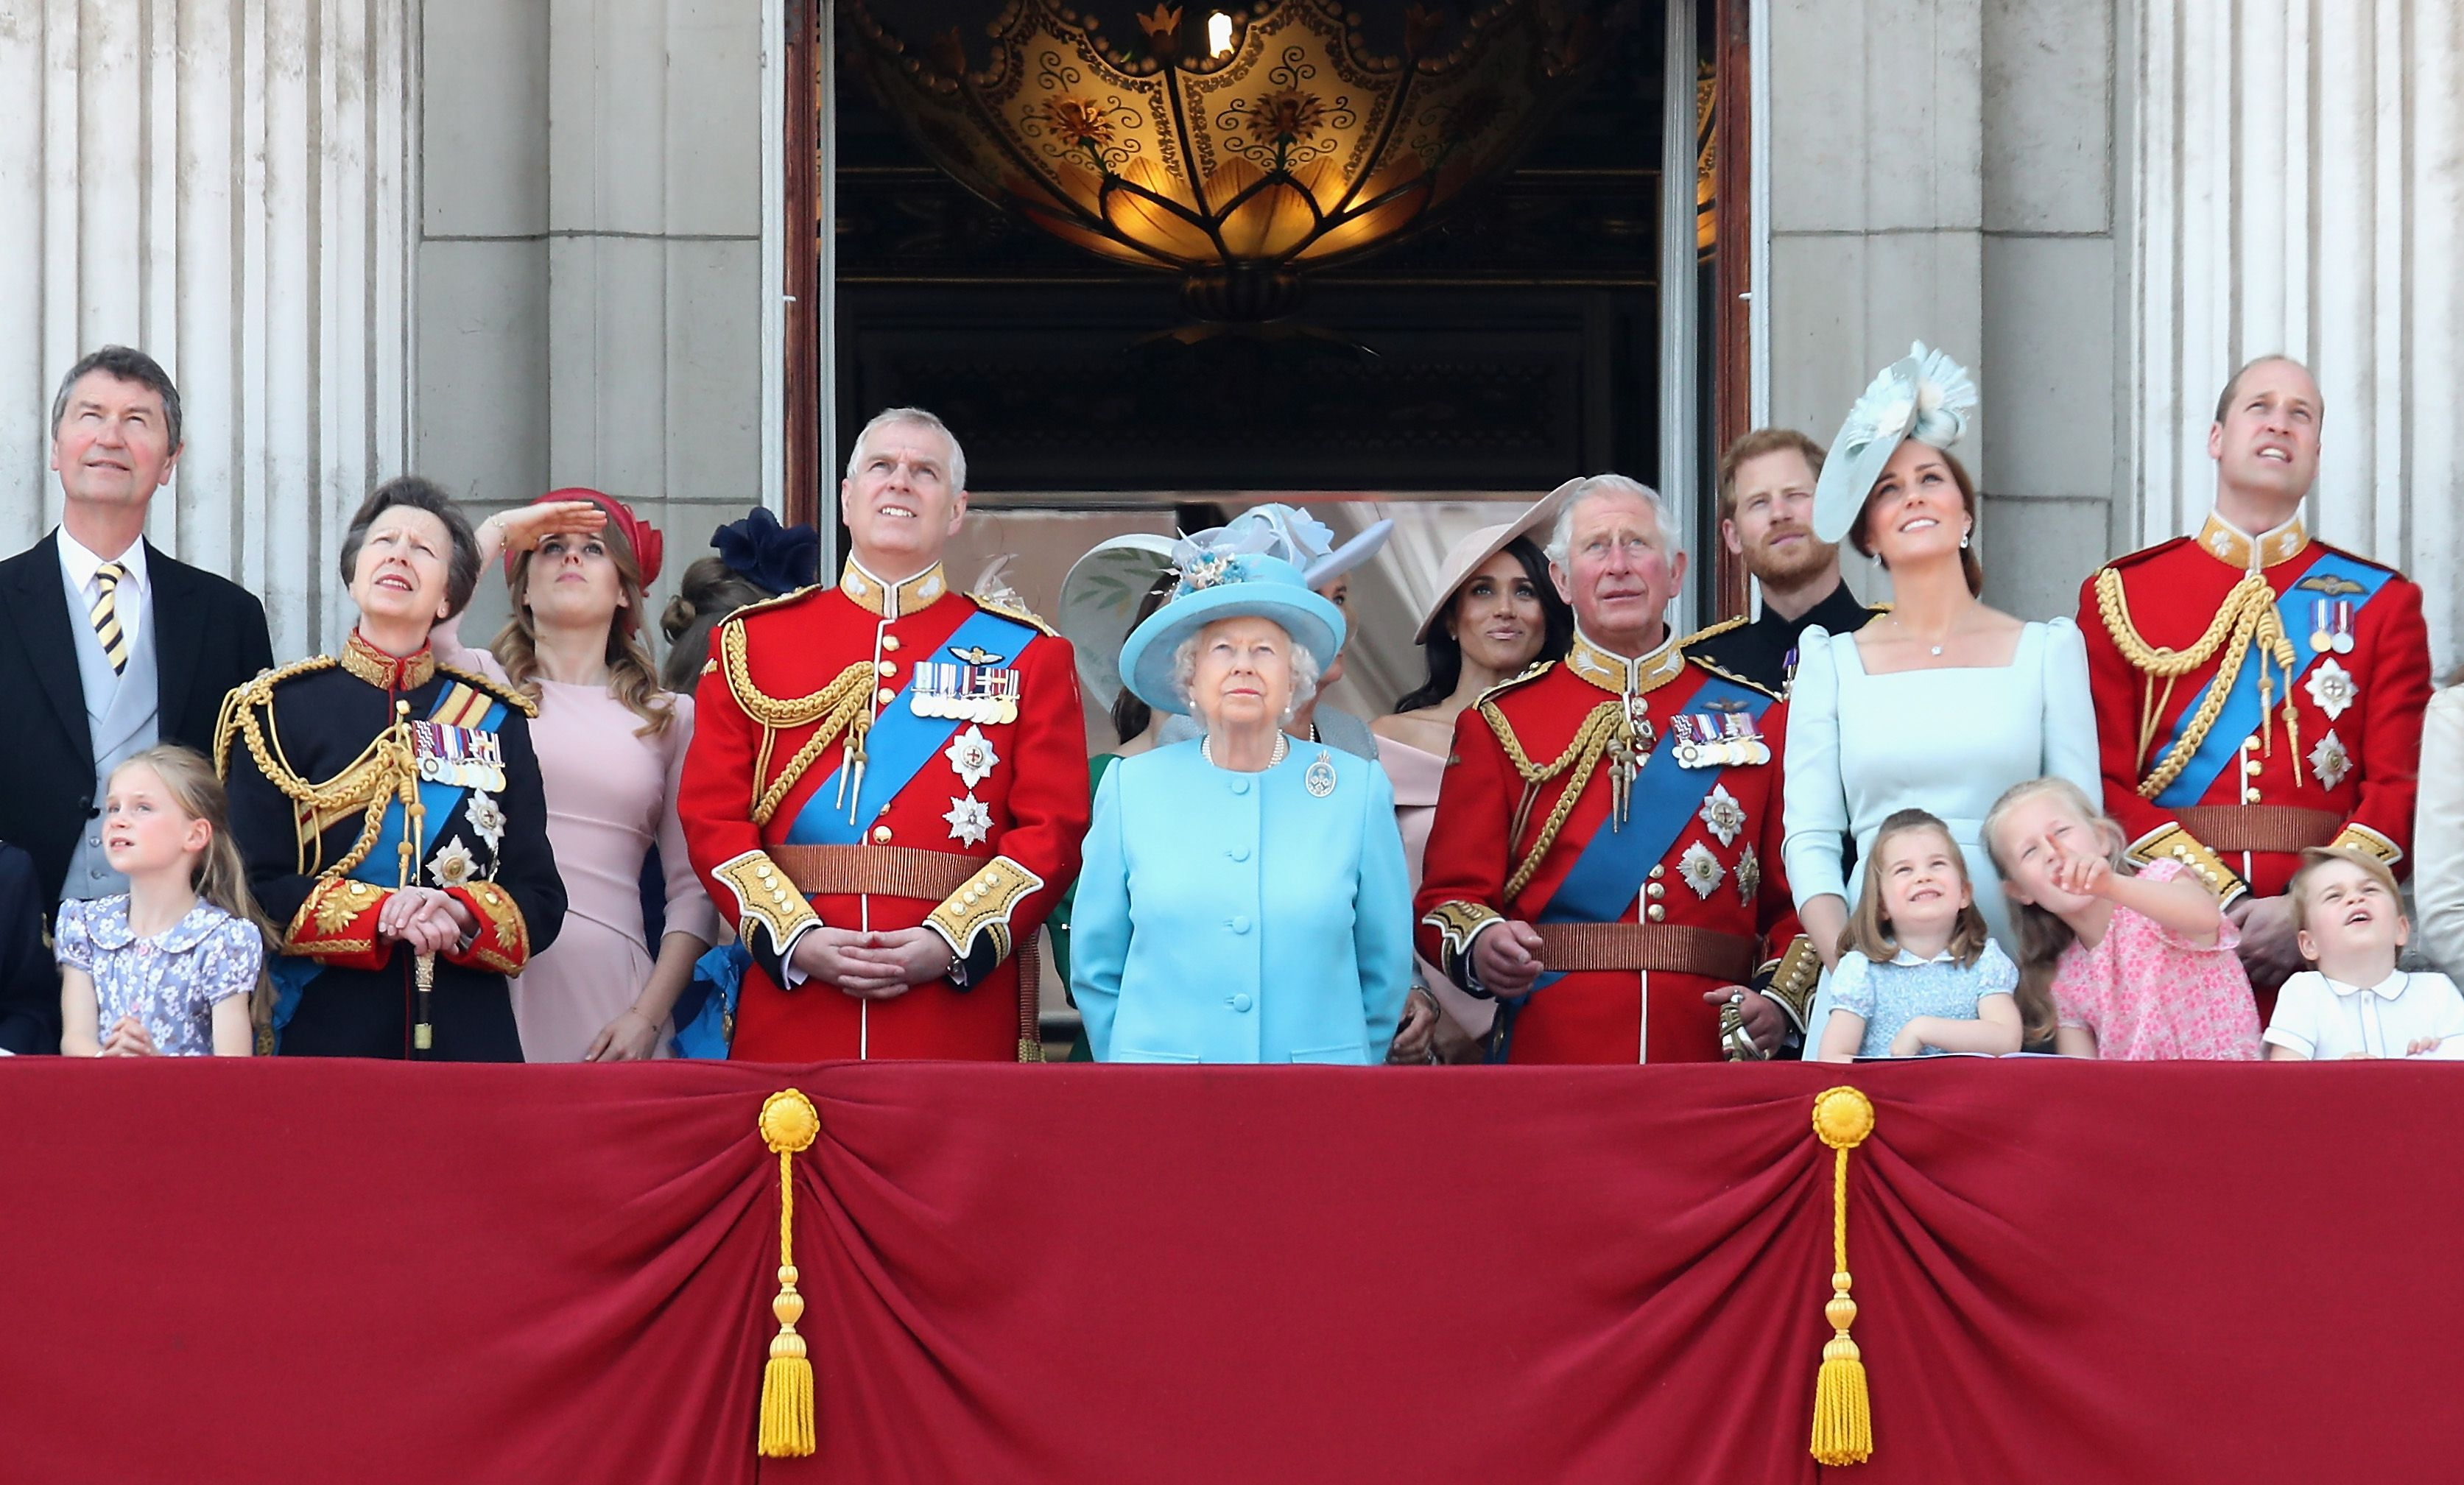 The royal family watch the flypast on the balcony of Buckingham Palace at Trooping The Colour on June 9, 2018 | Photo: Getty Images